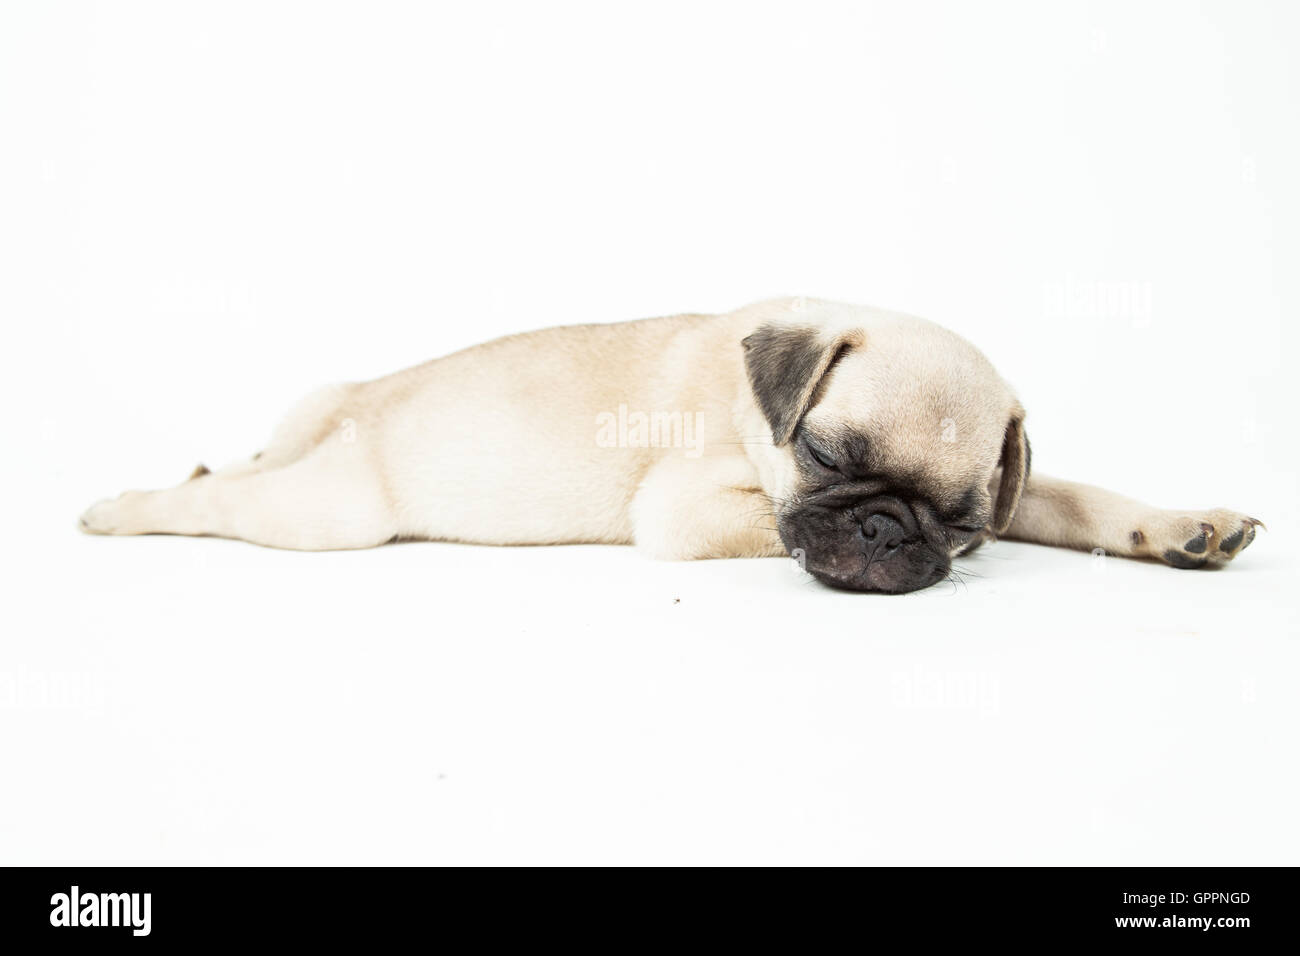 A cute pug puppy sleeping on white background - Stock Image